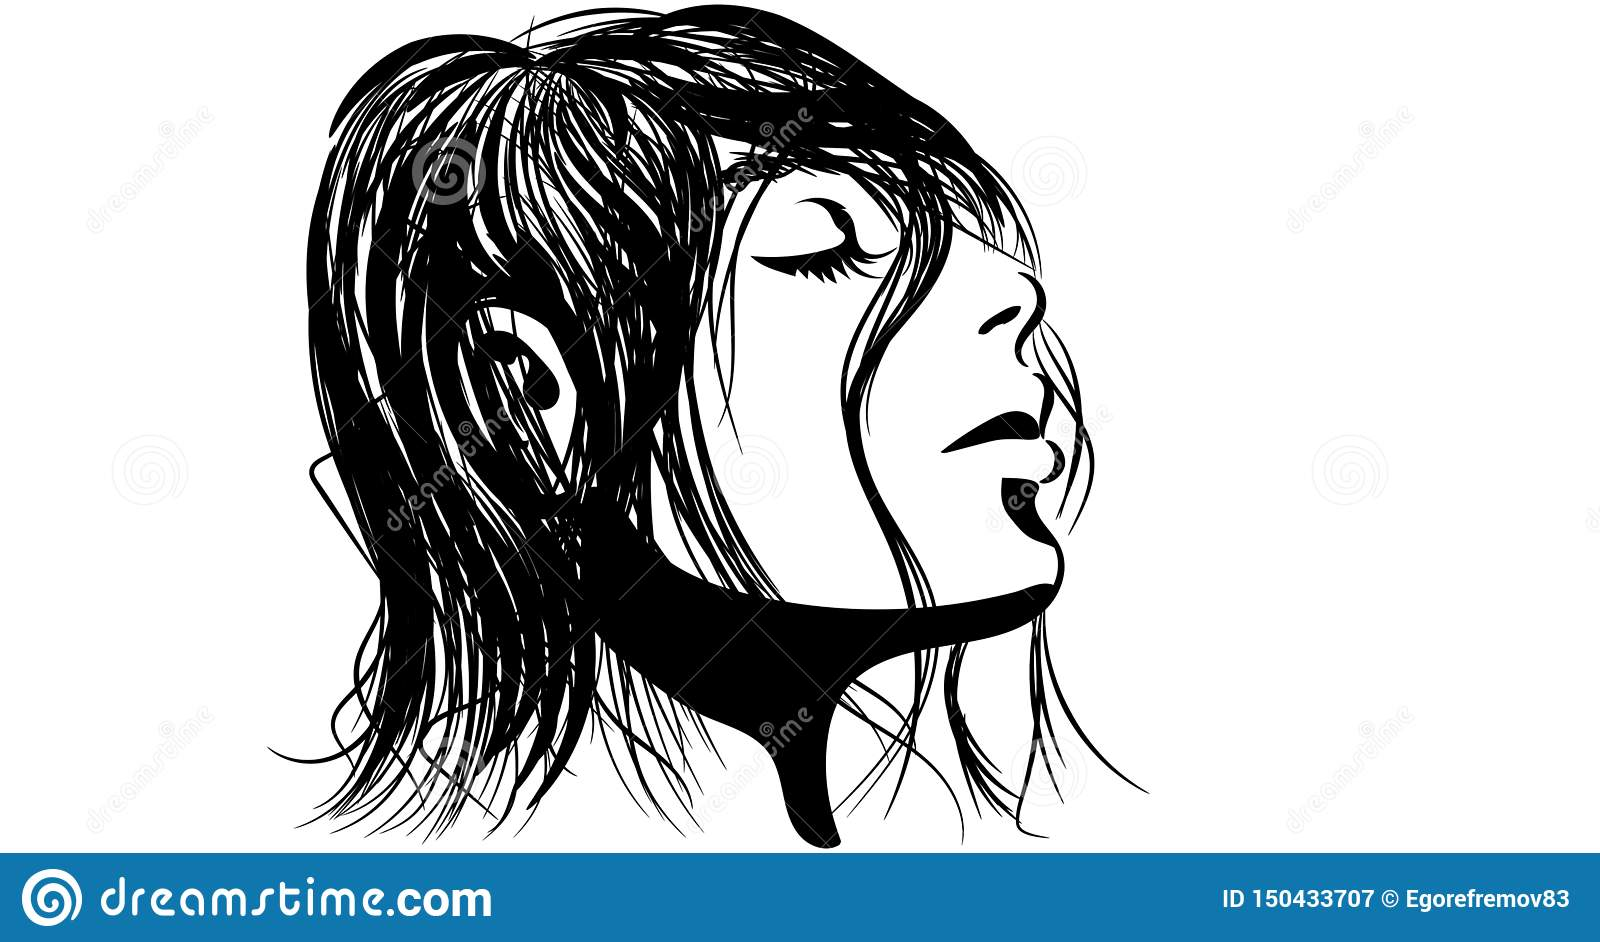 Linear illustration of a girl with wet hair